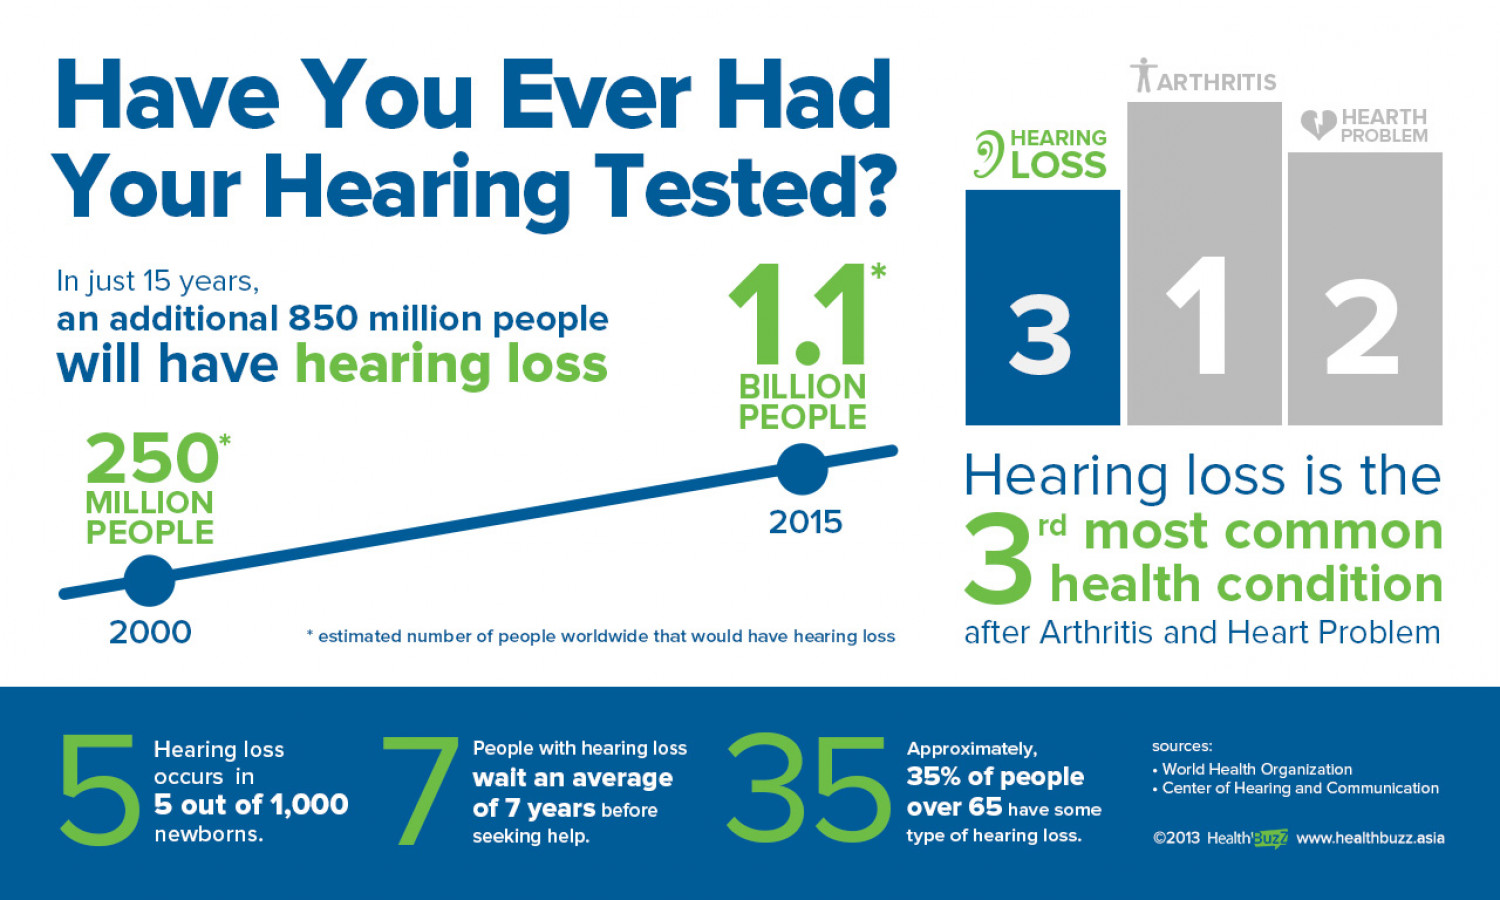 Have You Ever Had Your Hearing Tested? Infographic